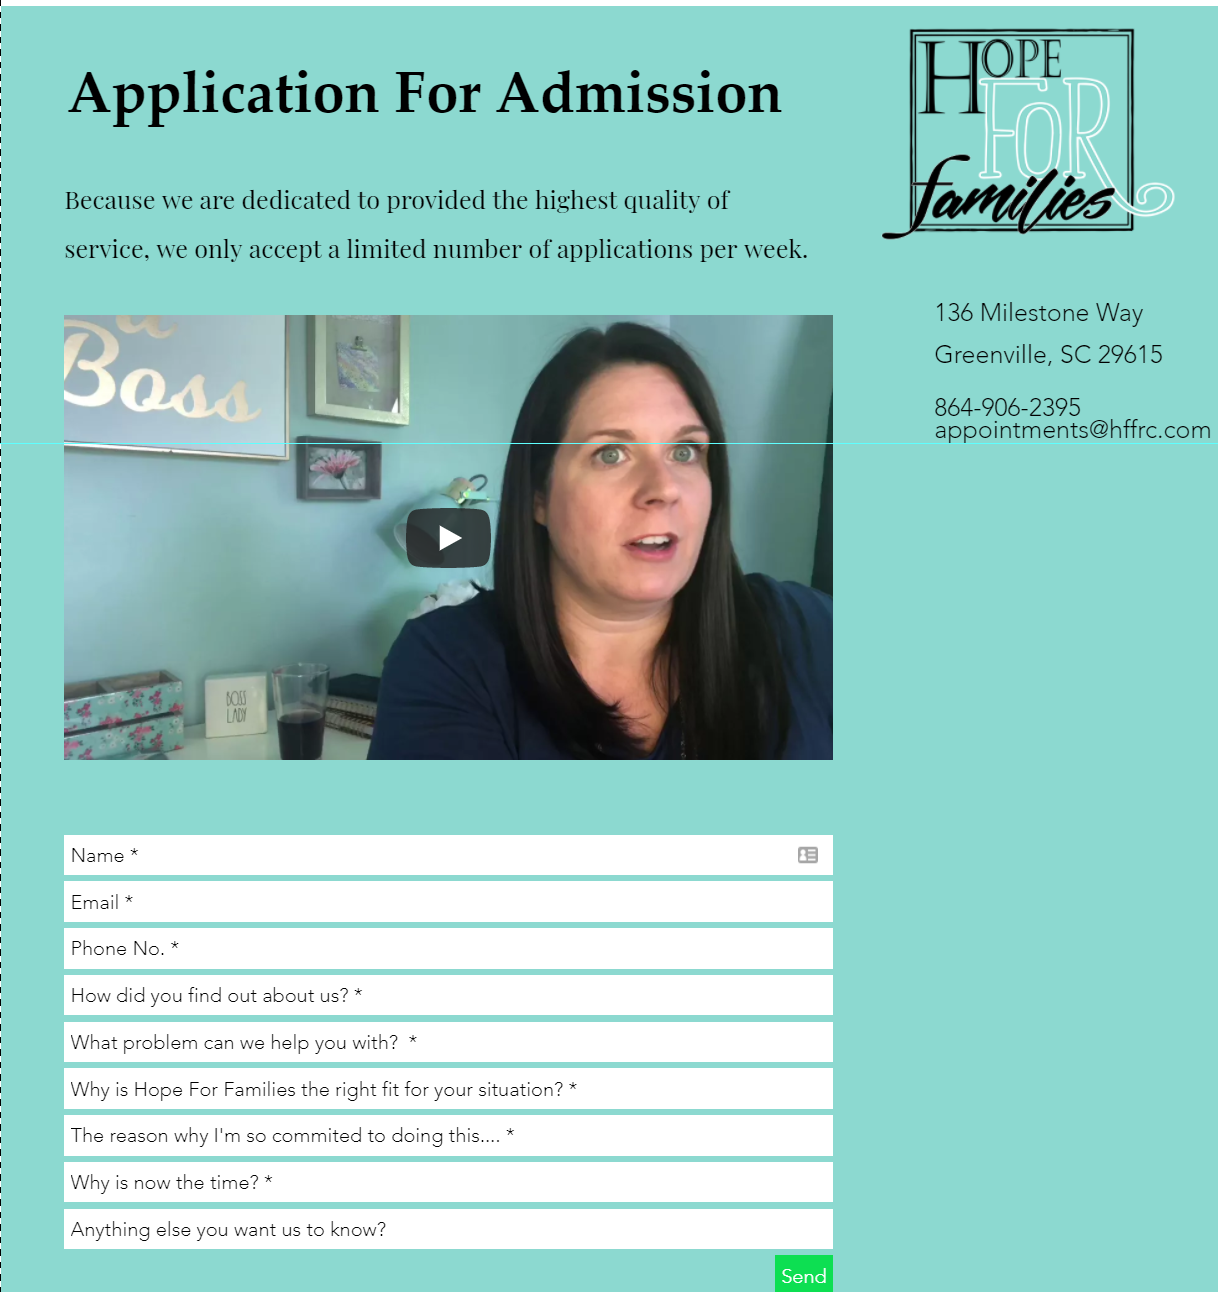 addiction treatment application for Hope For Families